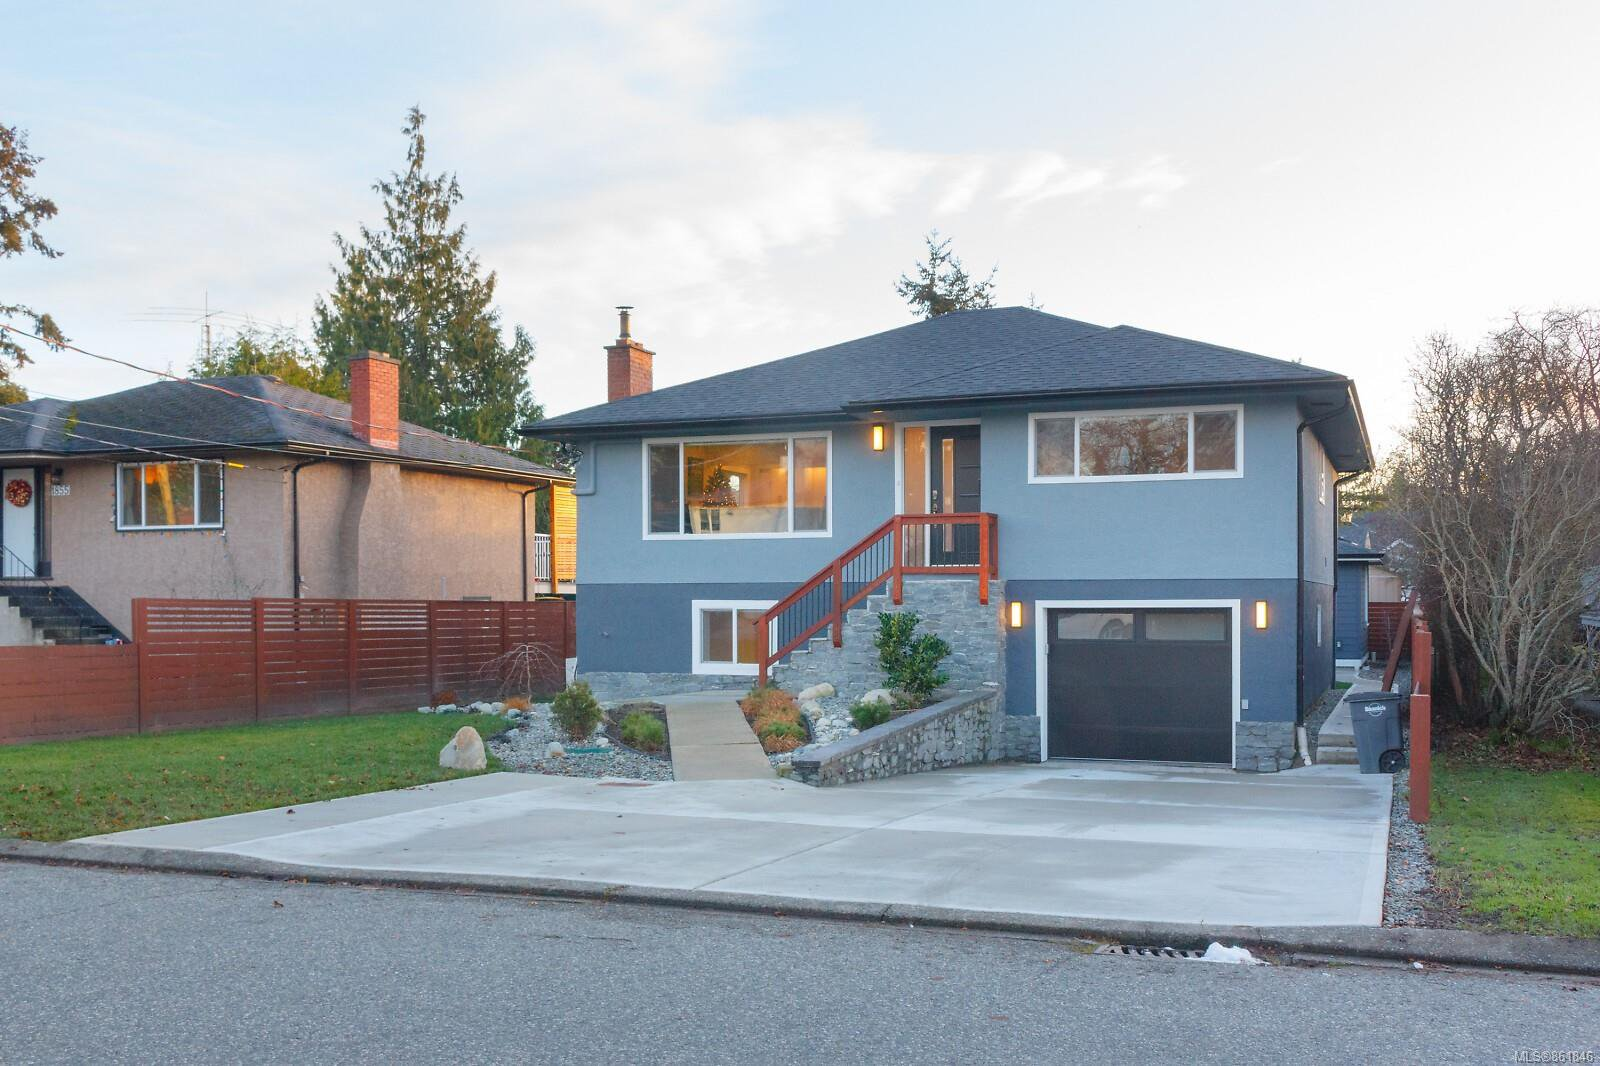 Main Photo: 1849 Carnarvon St in : SE Camosun House for sale (Saanich East)  : MLS®# 861846